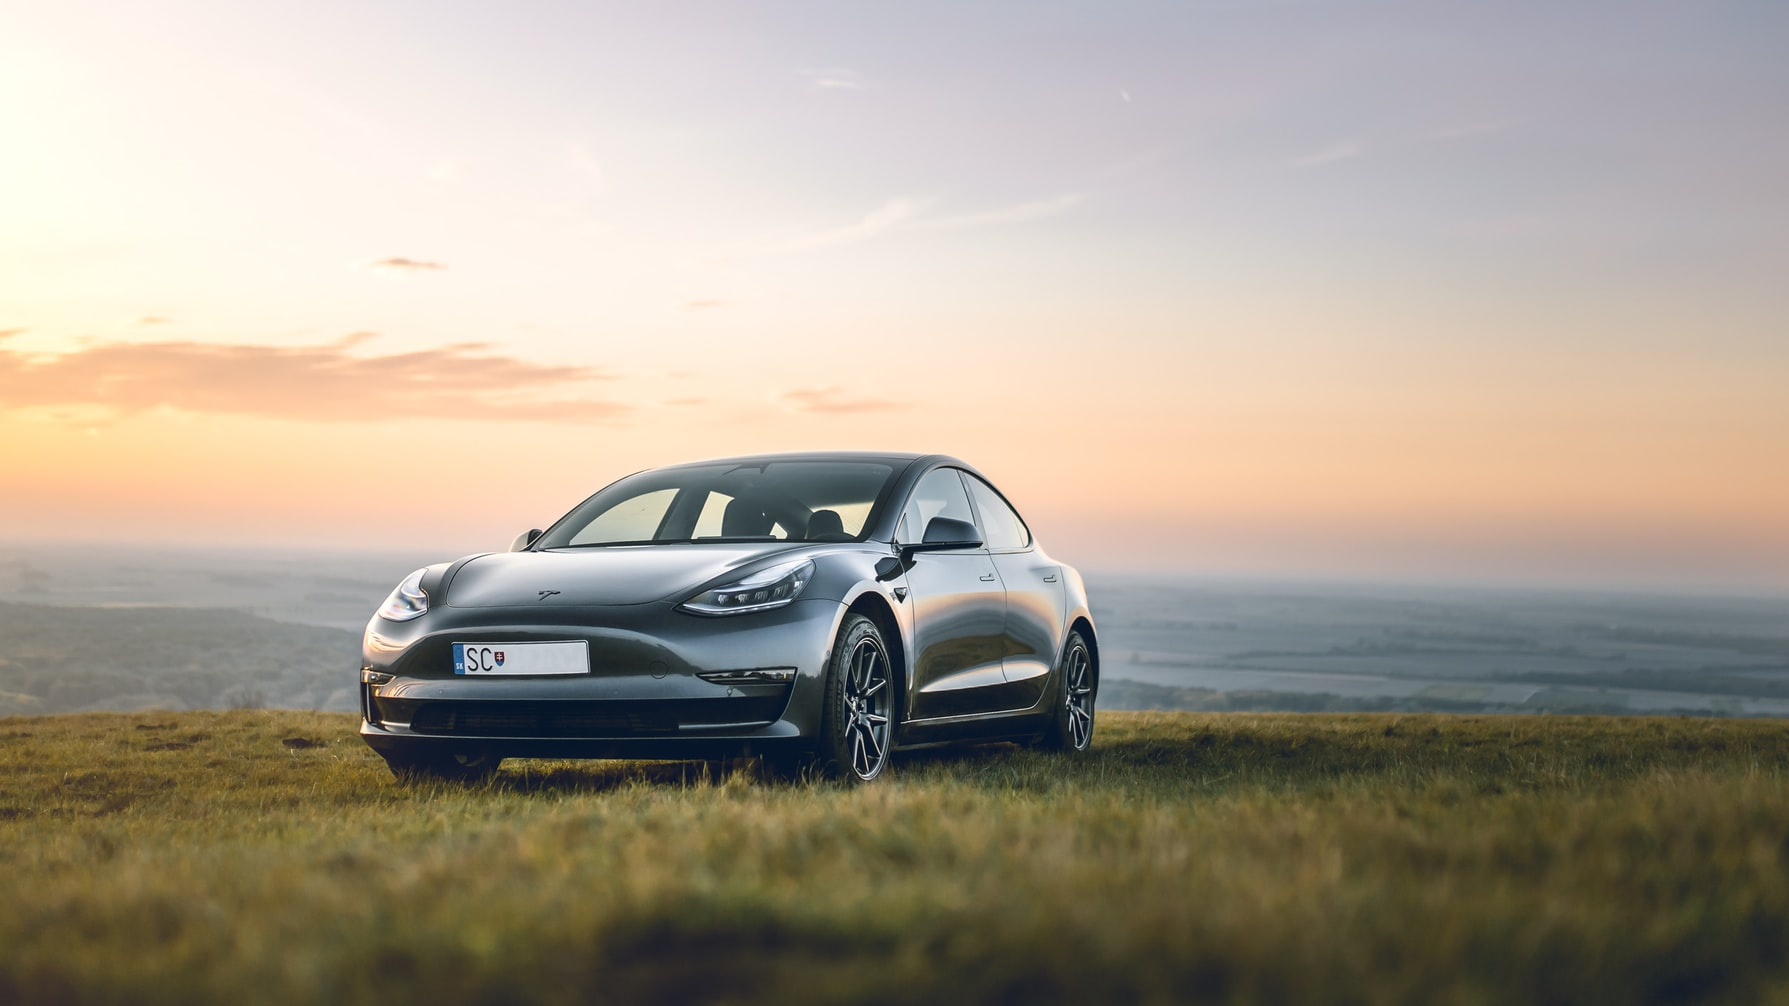 Are Tesla S Good For Long Road Trips You Judge Rechargd